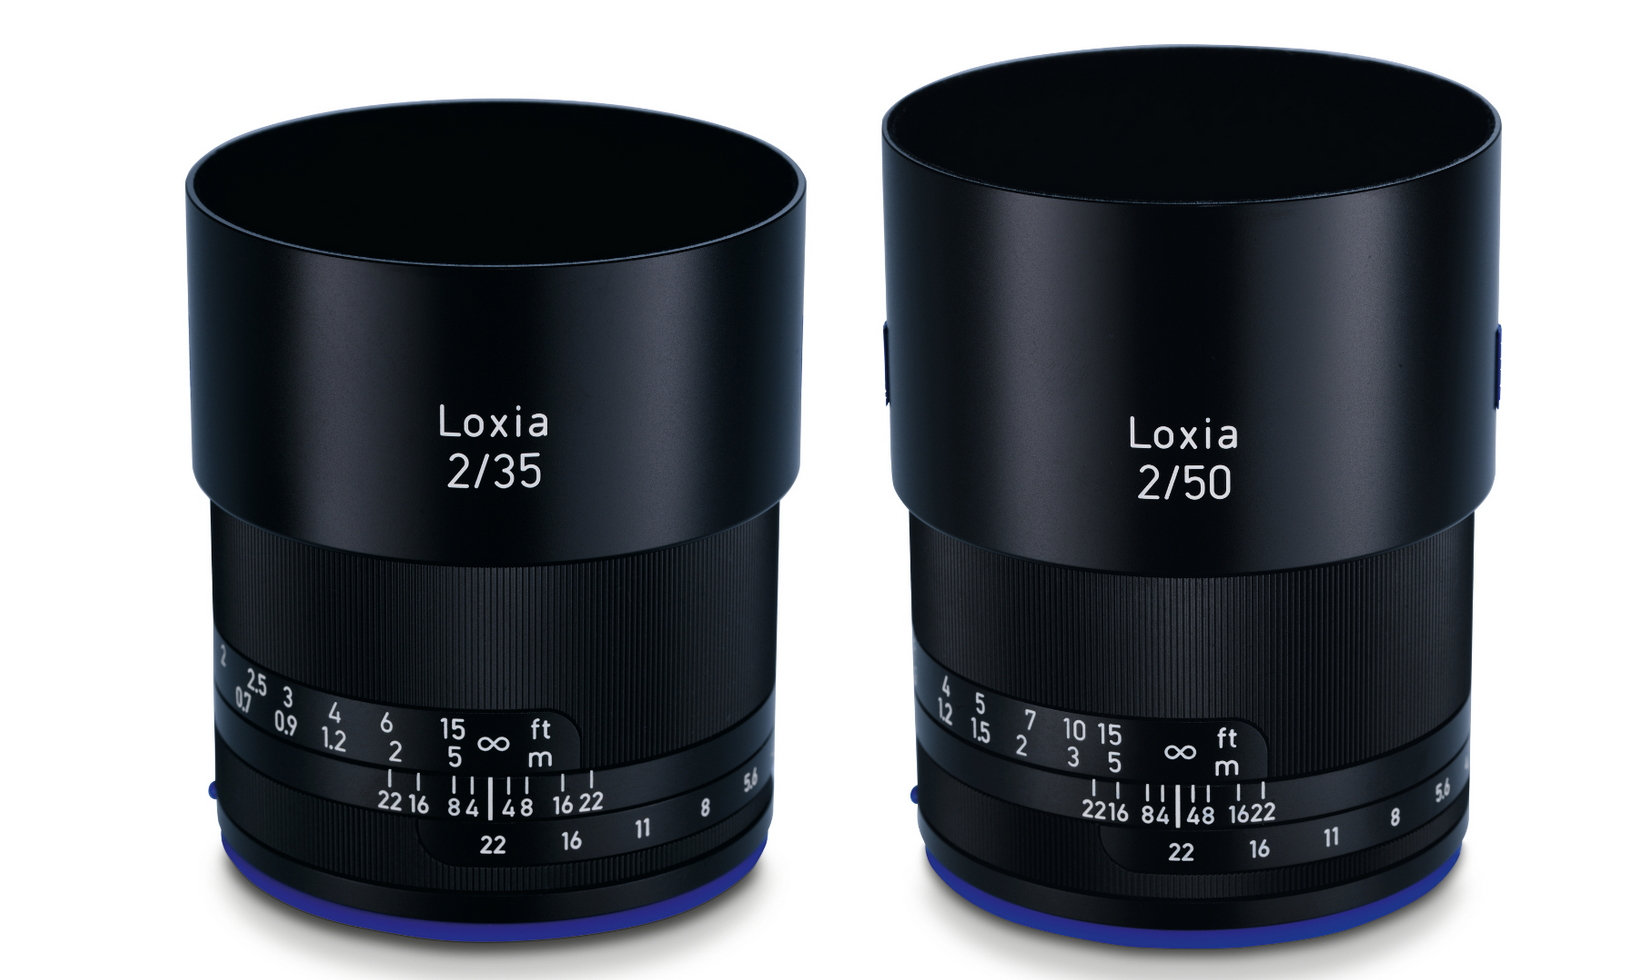 Zeiss Brings New Line Of Full Frame Lenses For Sony E-Mount With Loxia |